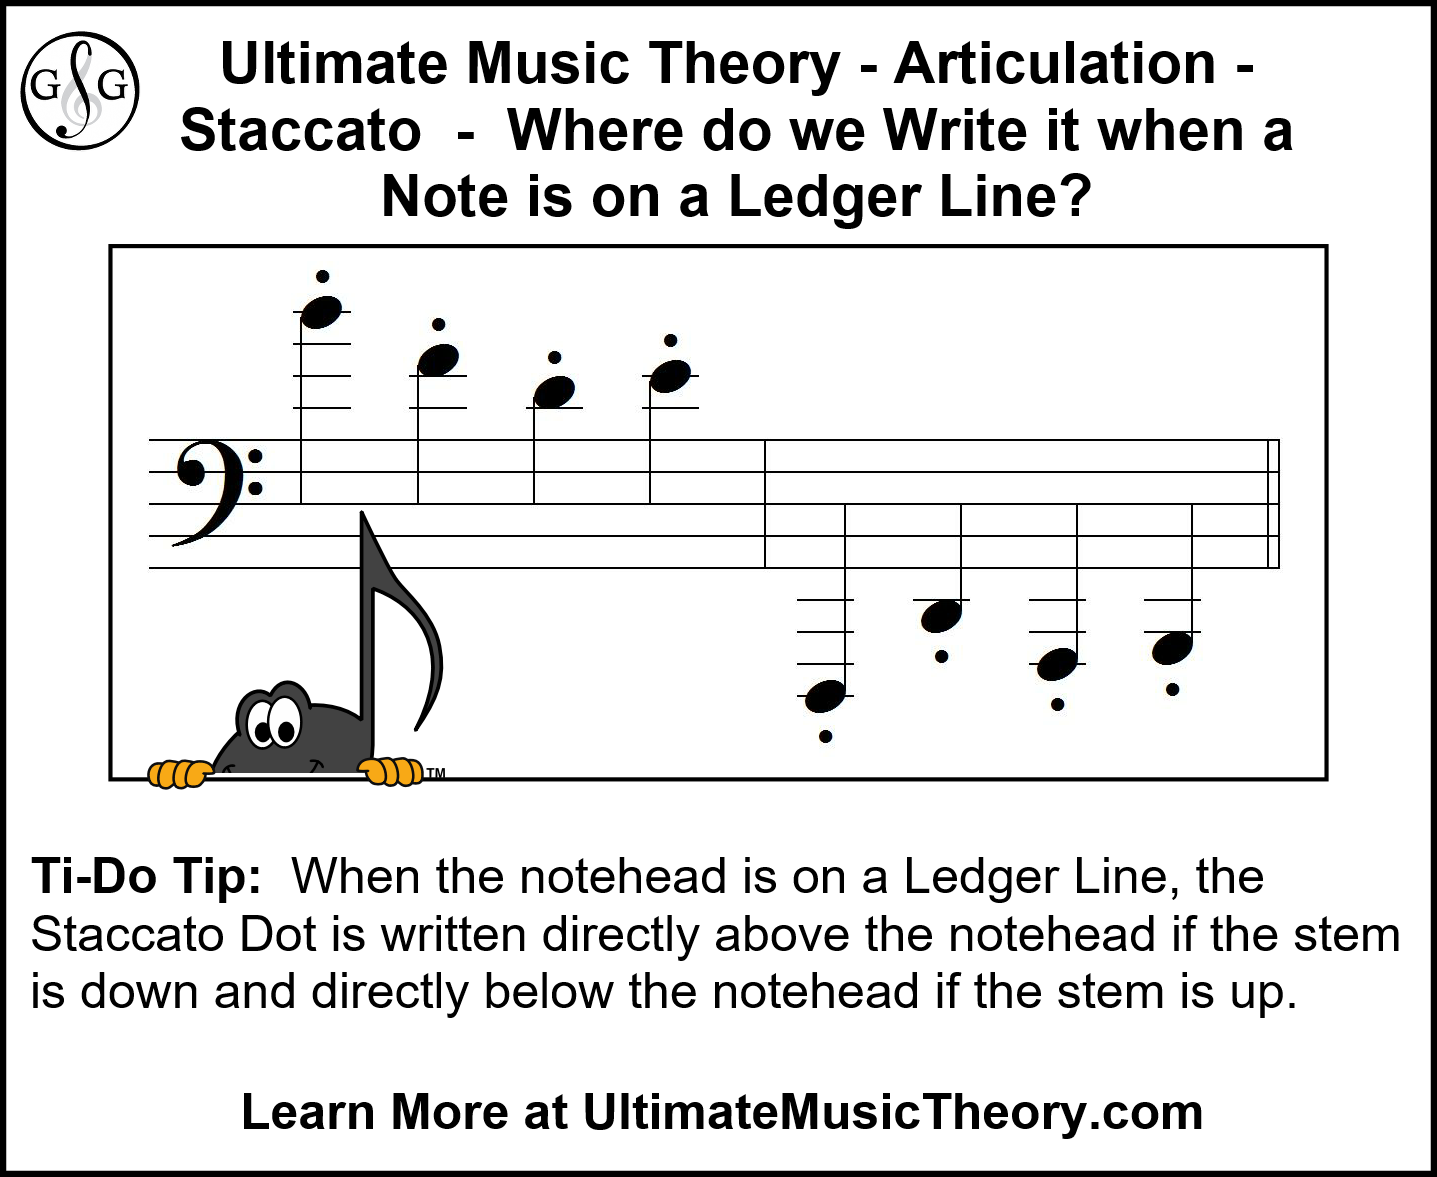 UMT Staccato dots and ledger line notes